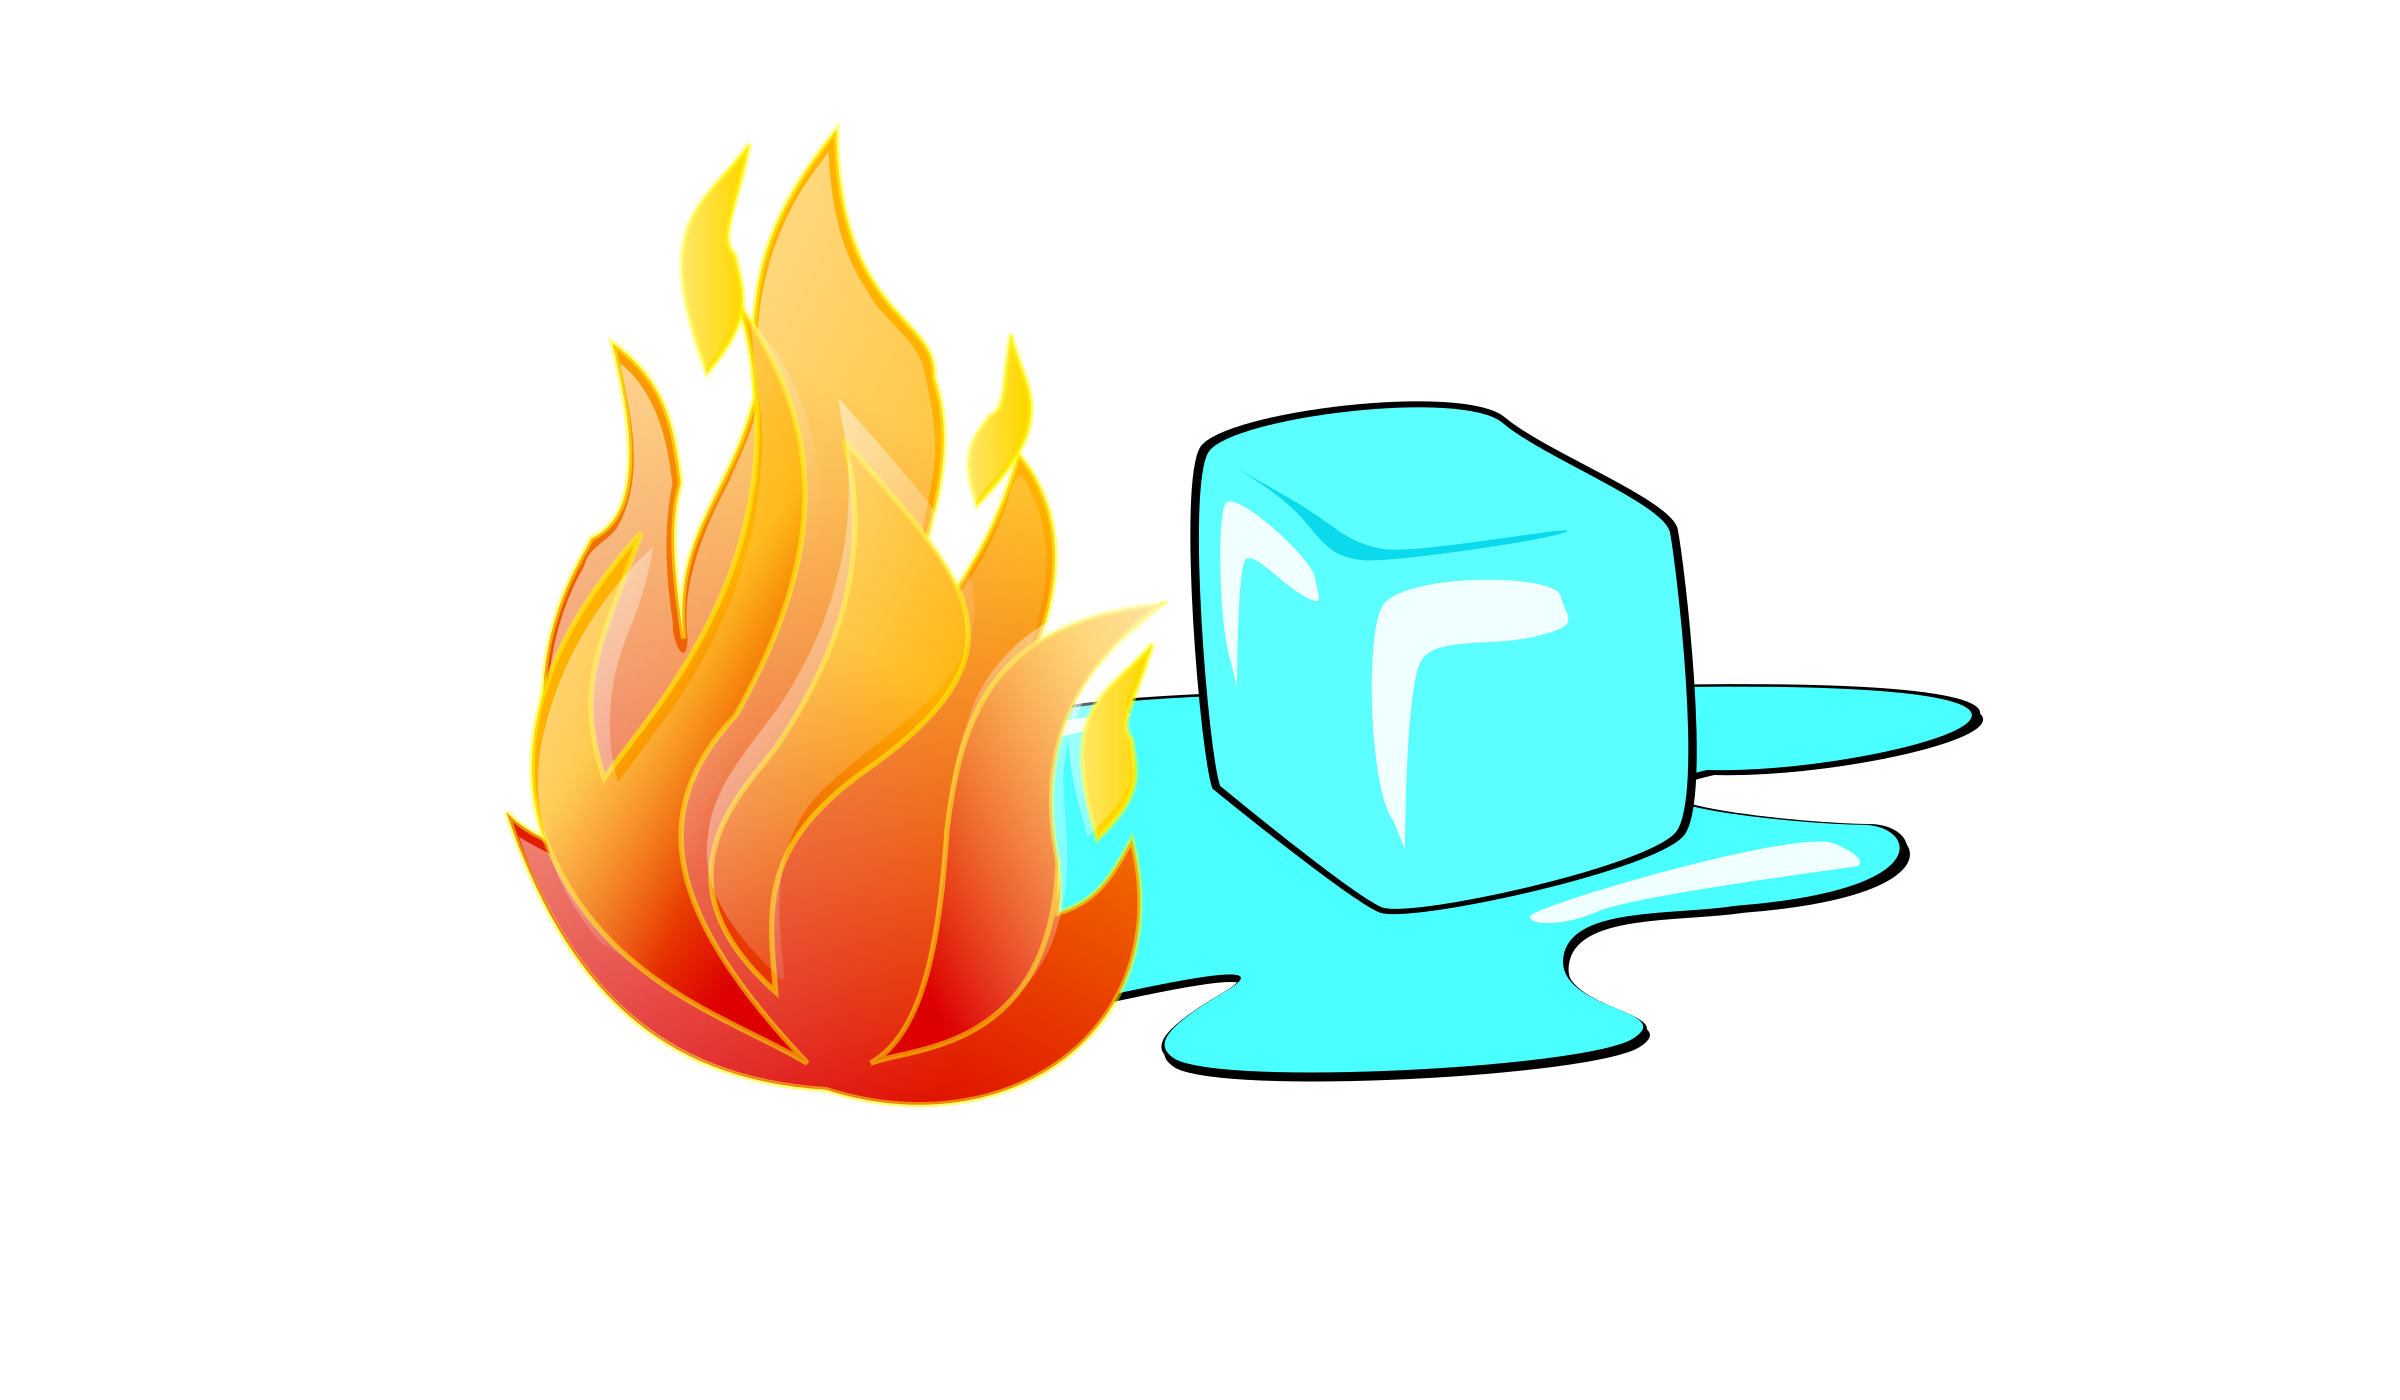 Ice clipart fire. And